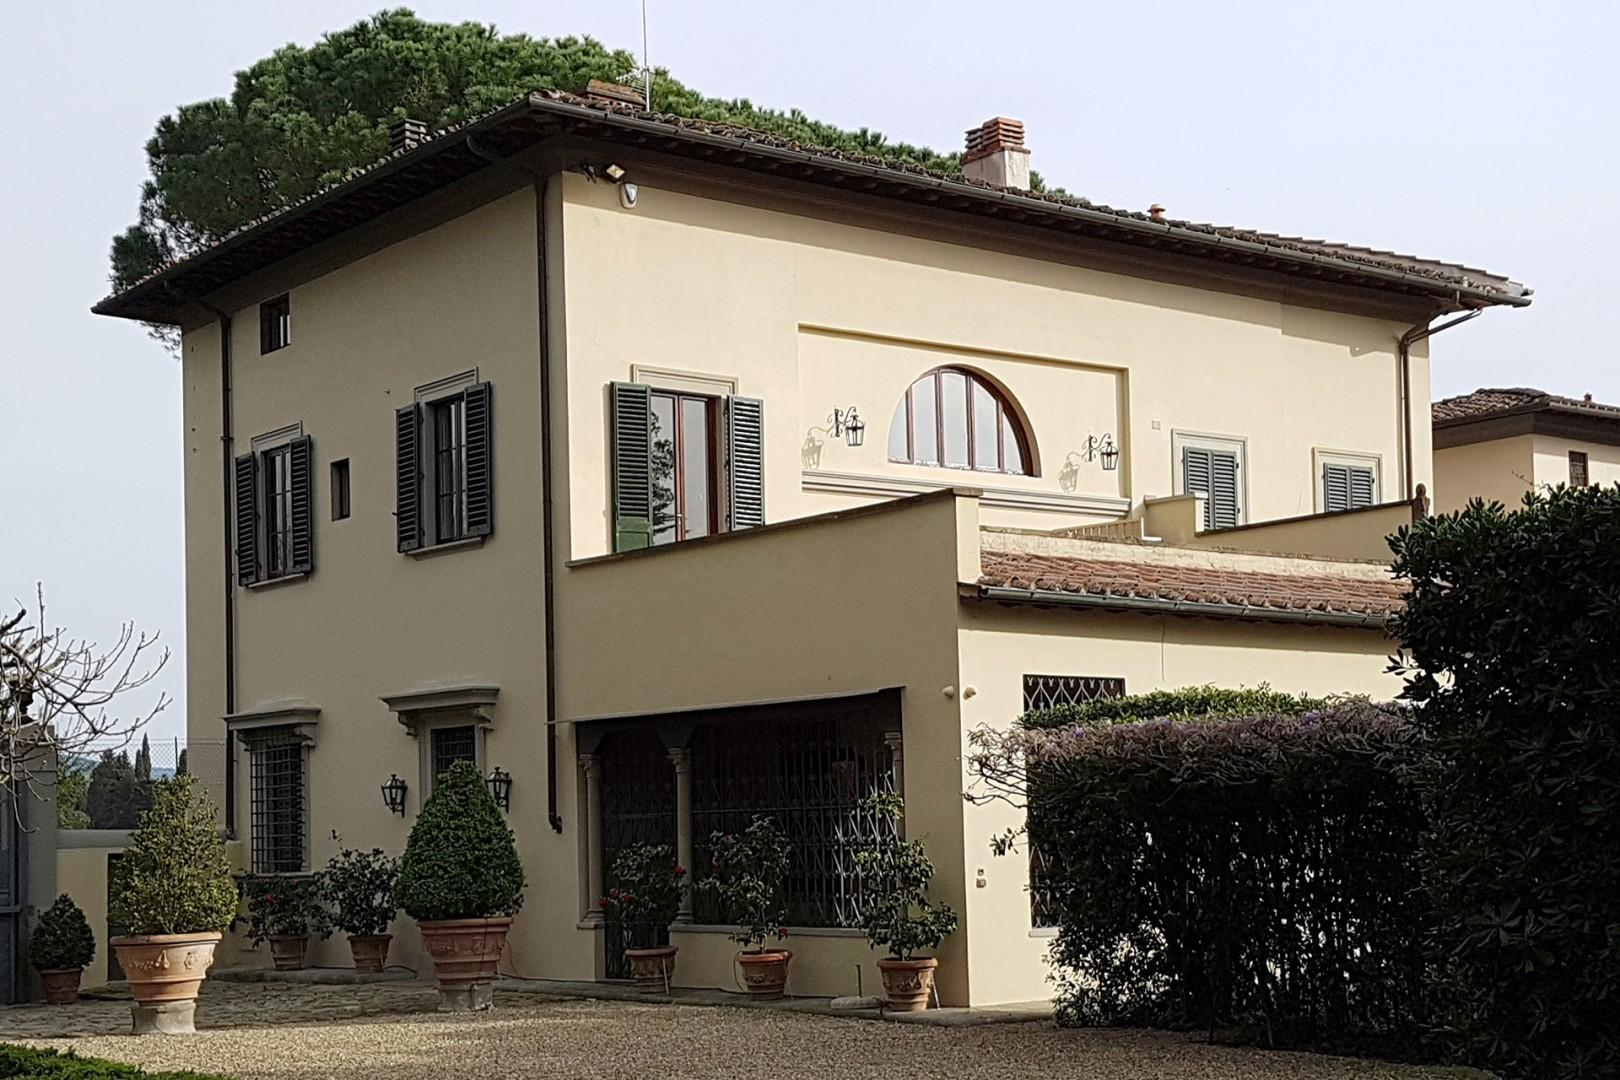 The front door is to the left. Loggia is in front, above it is the upstairs terrace with hot tub.